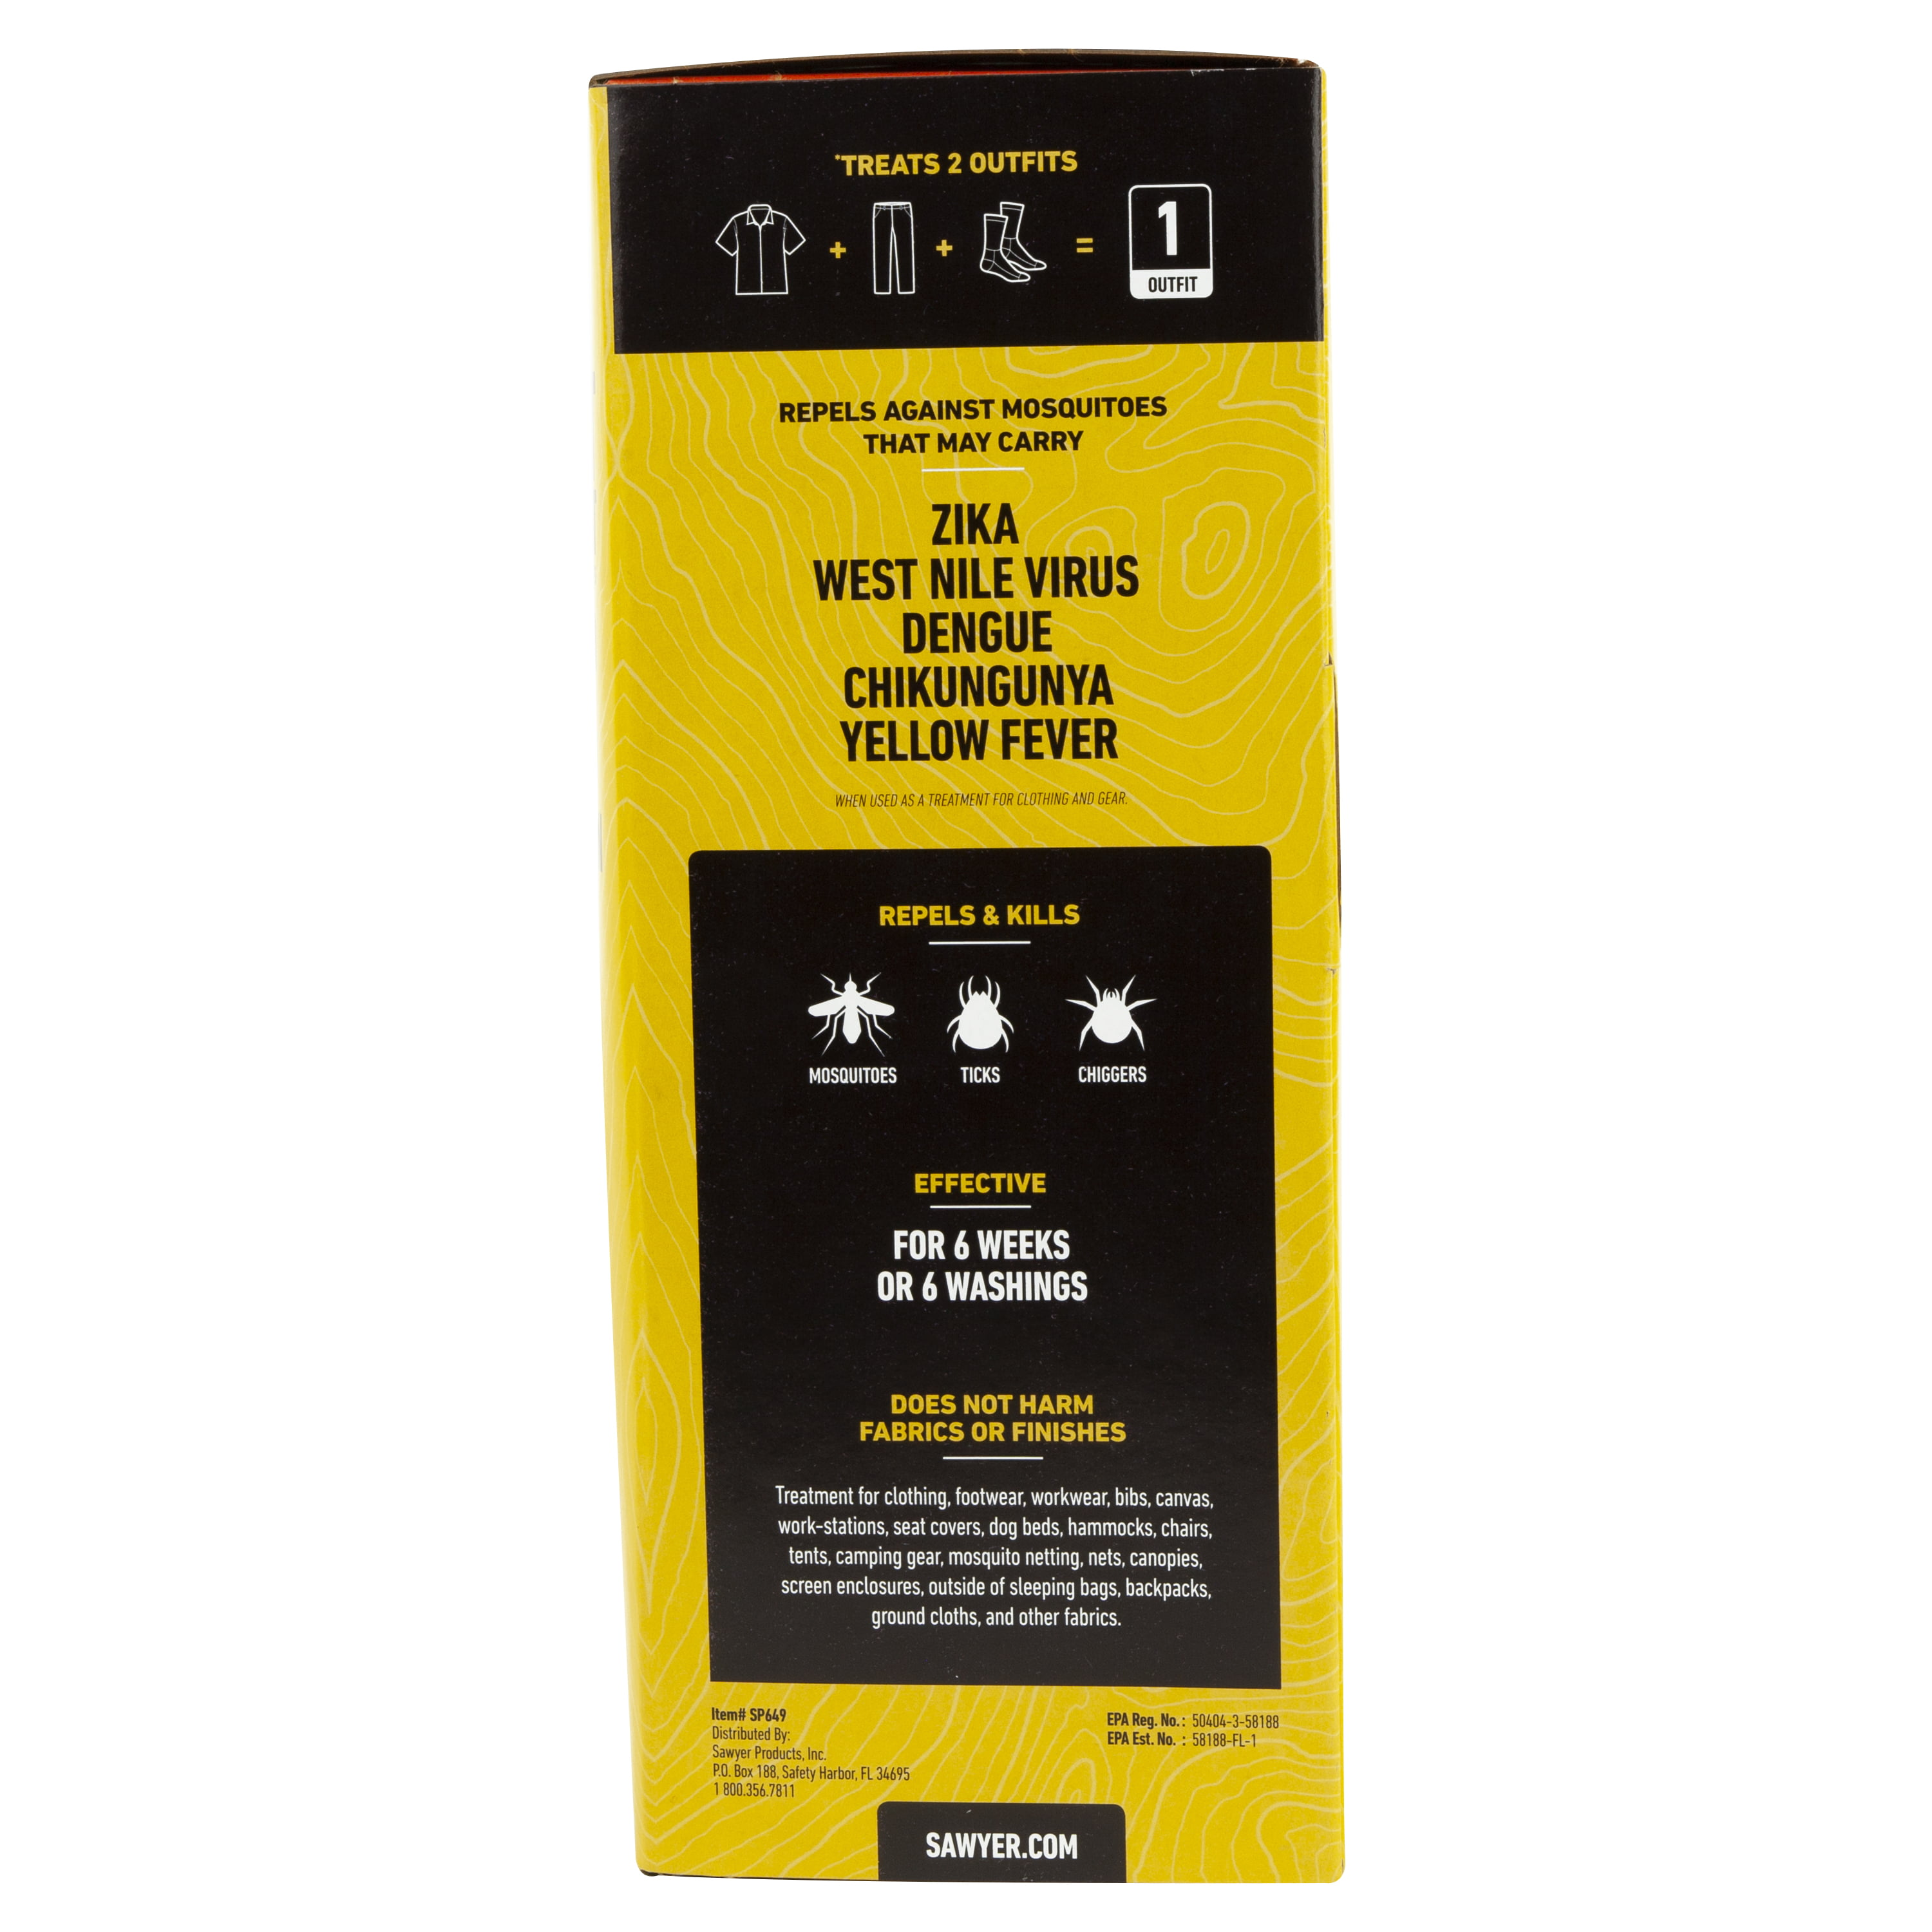 Sawyer Products Permethrin Premium Clothing Insect Repellent   12 Oz  Trigger Spray